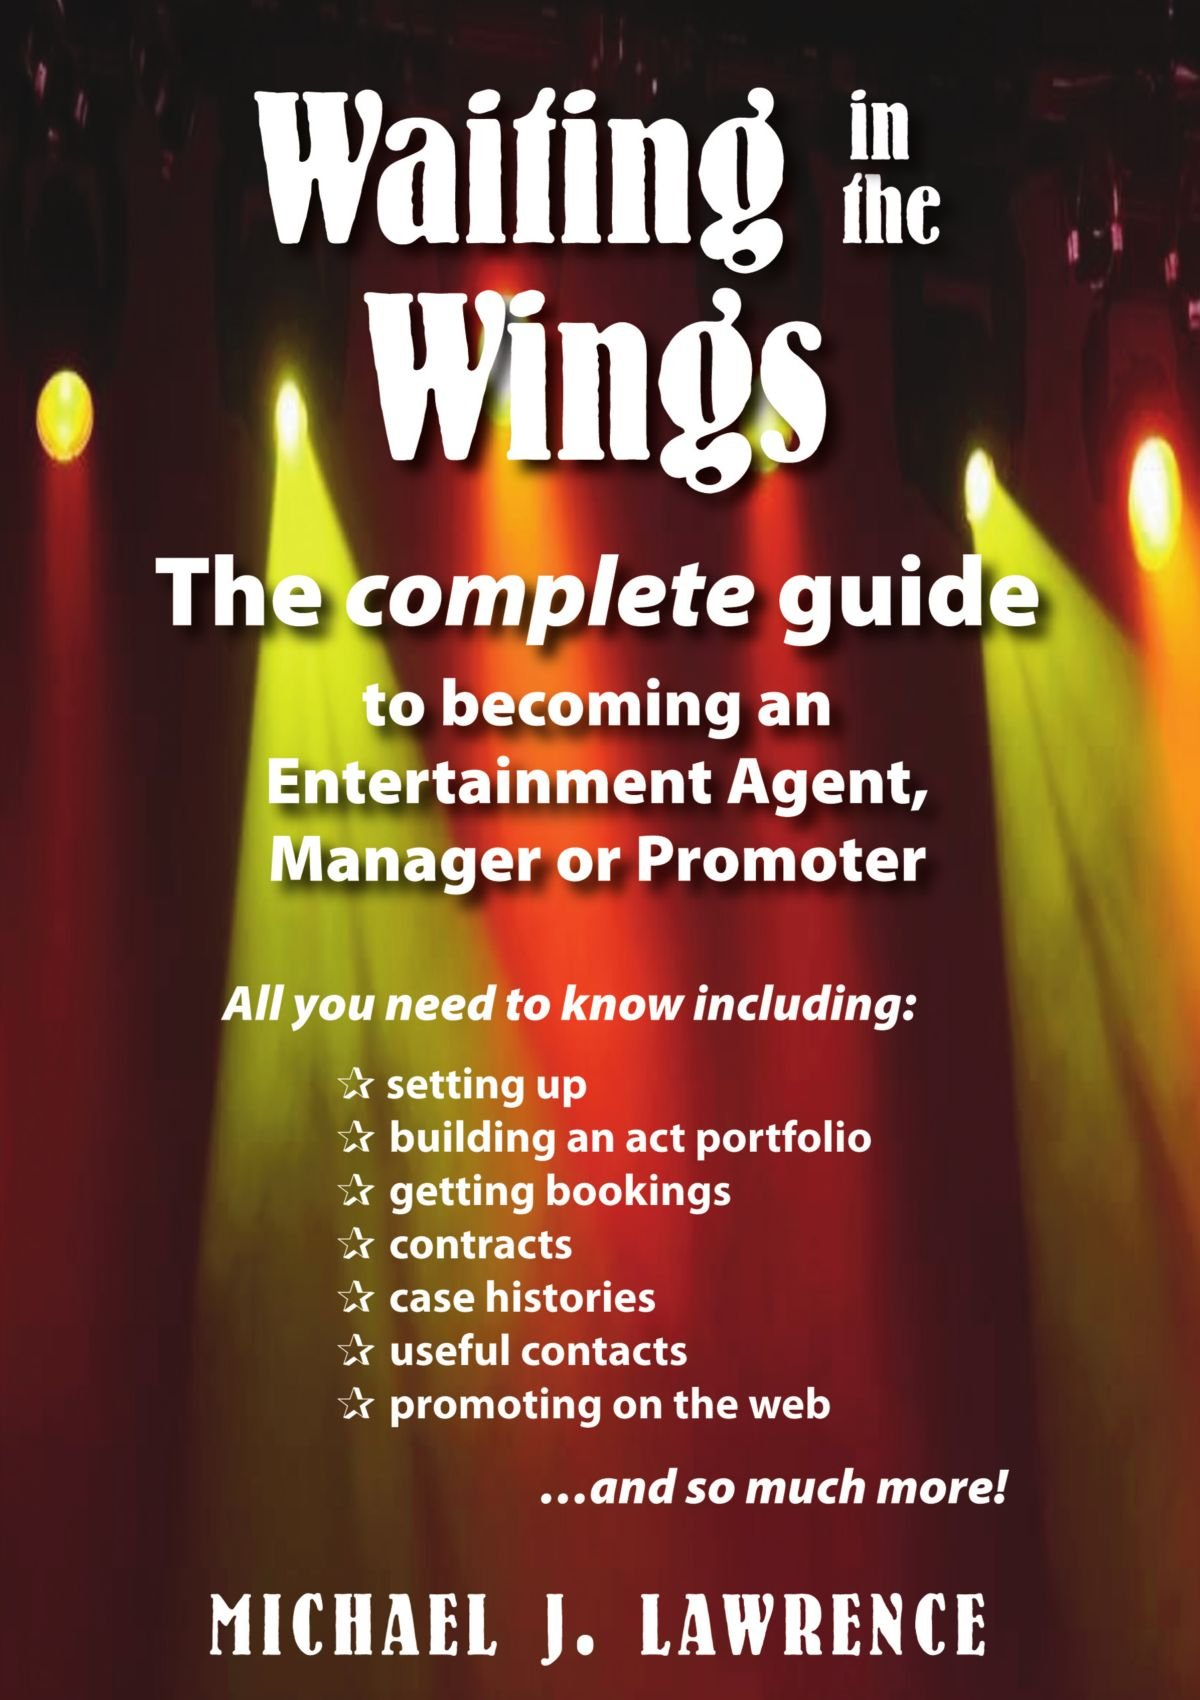 Waiting in the Wings: The Complete Guide To Becoming An Entertainment Agent, Manager or Promoter PDF